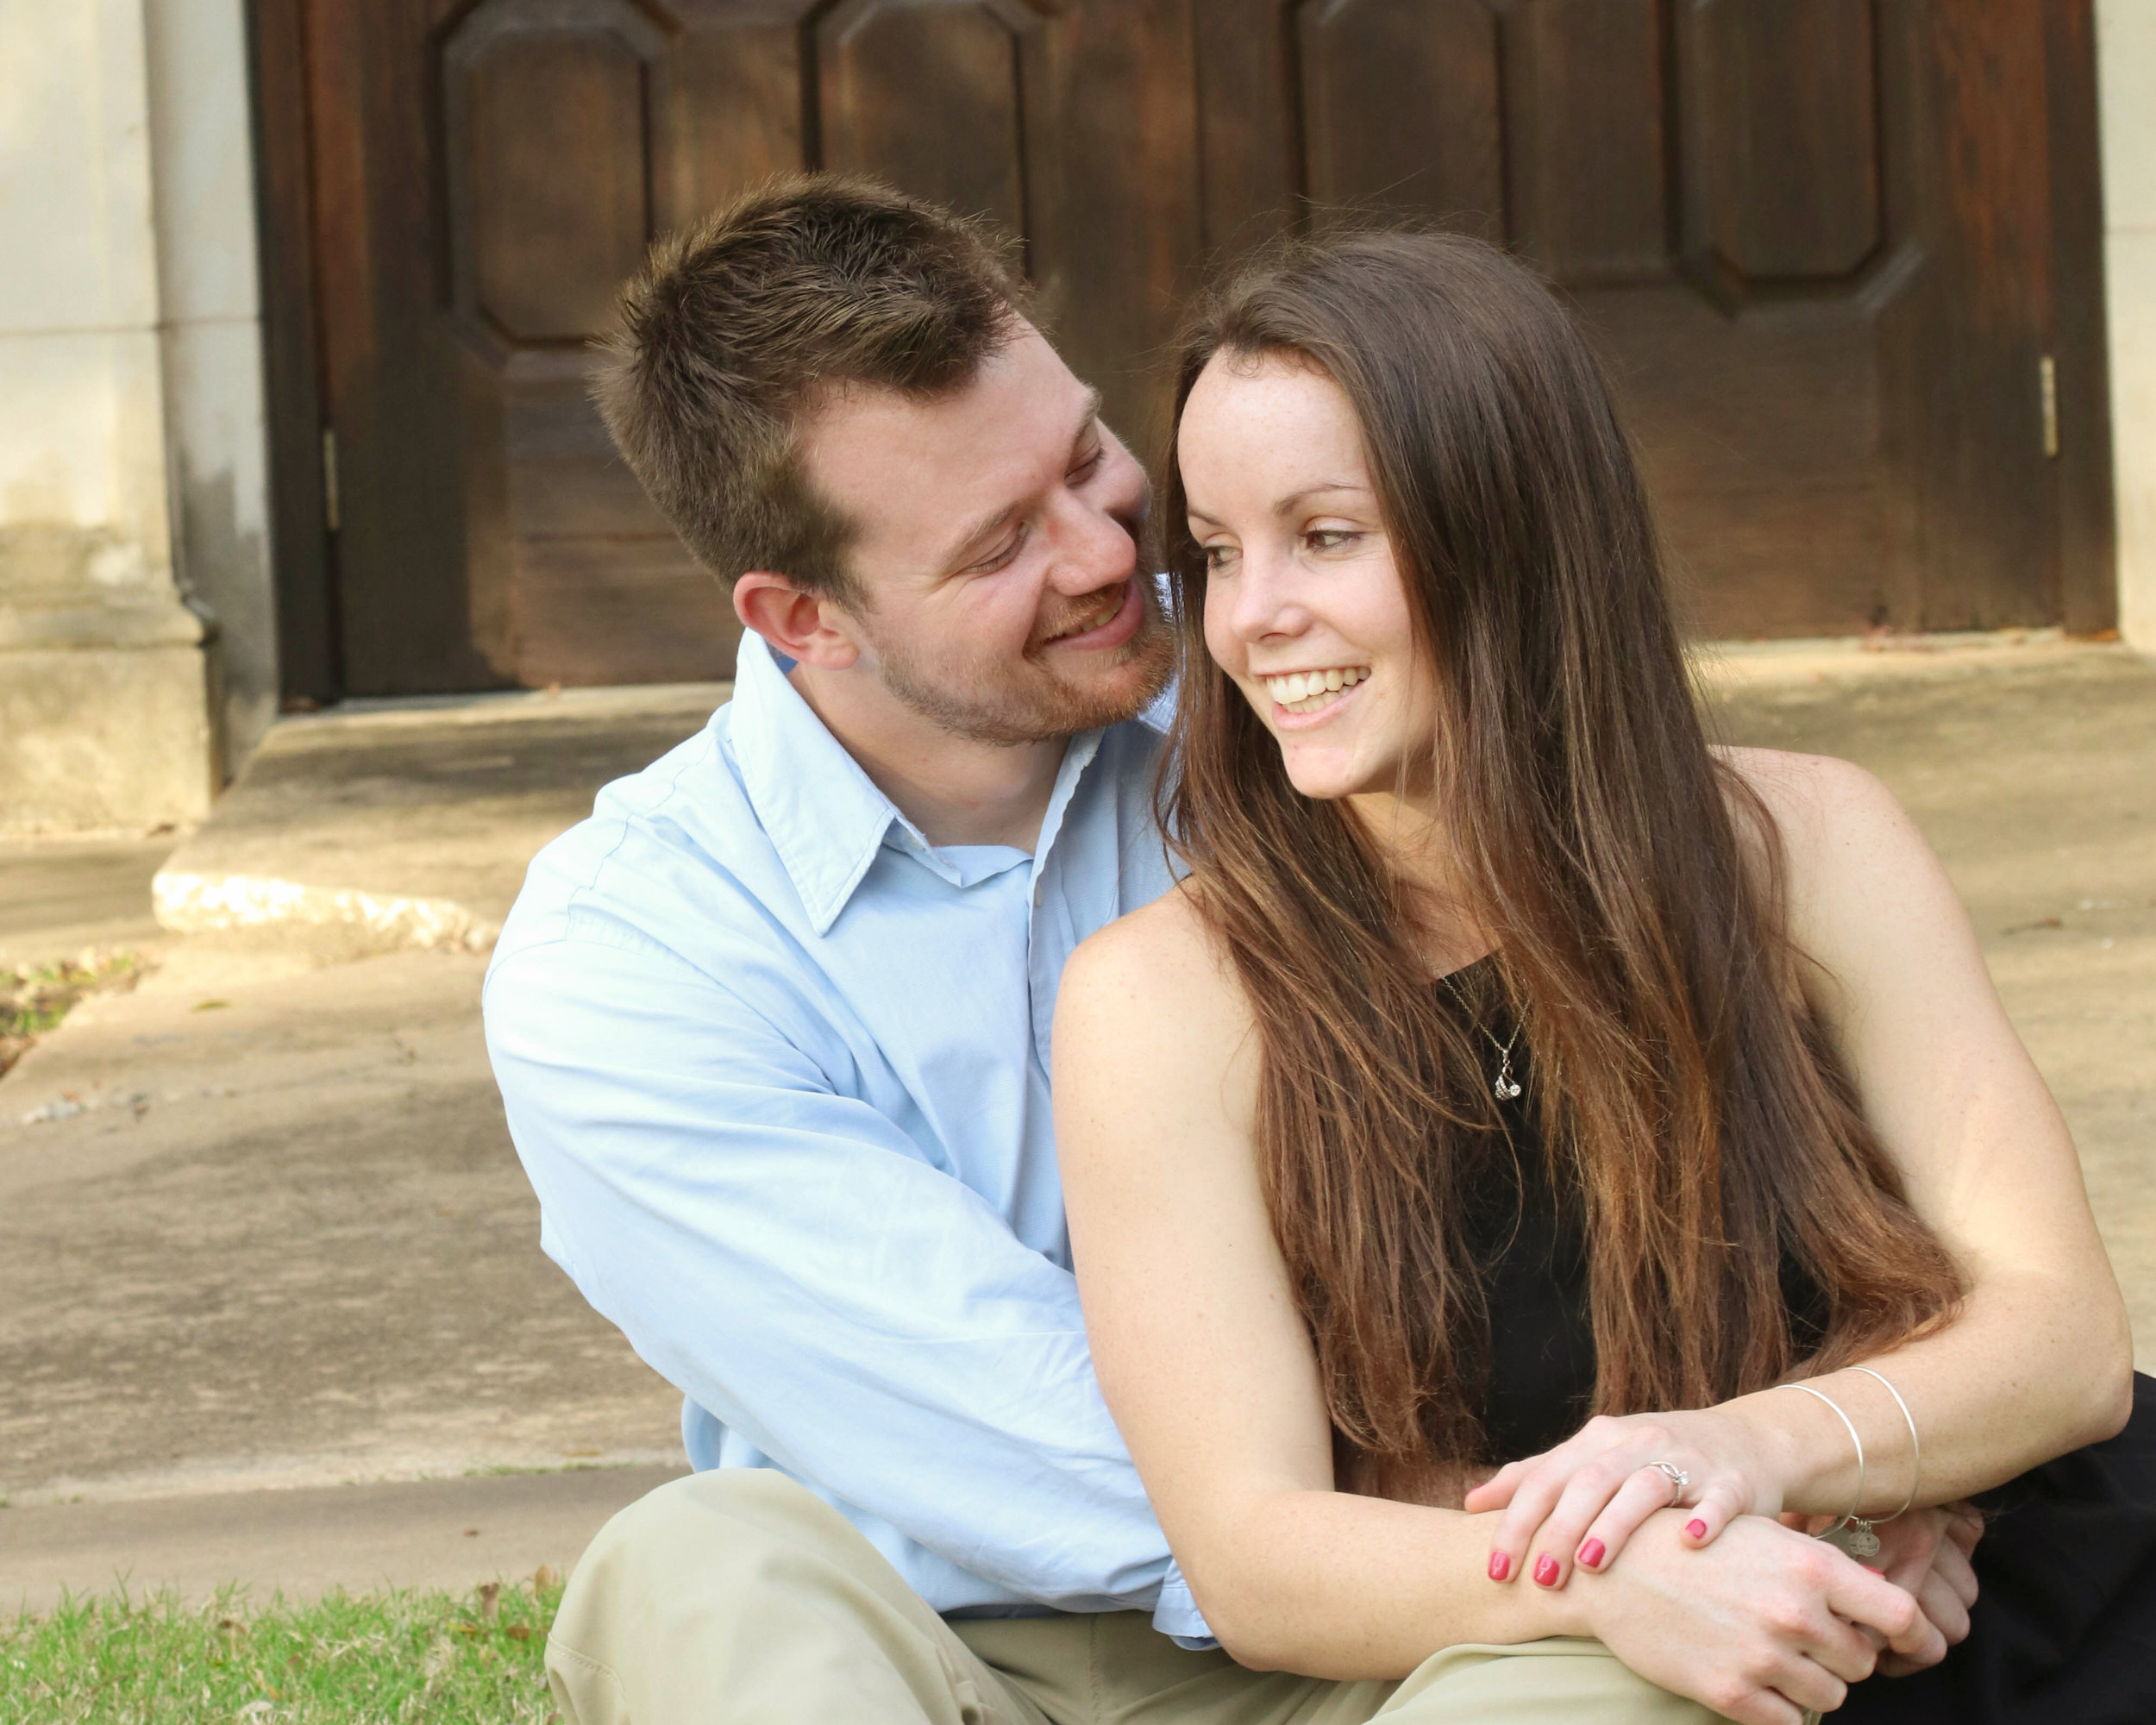 © Christina Smith Photography_Wilkes Engagement_105 copy 2.jpg